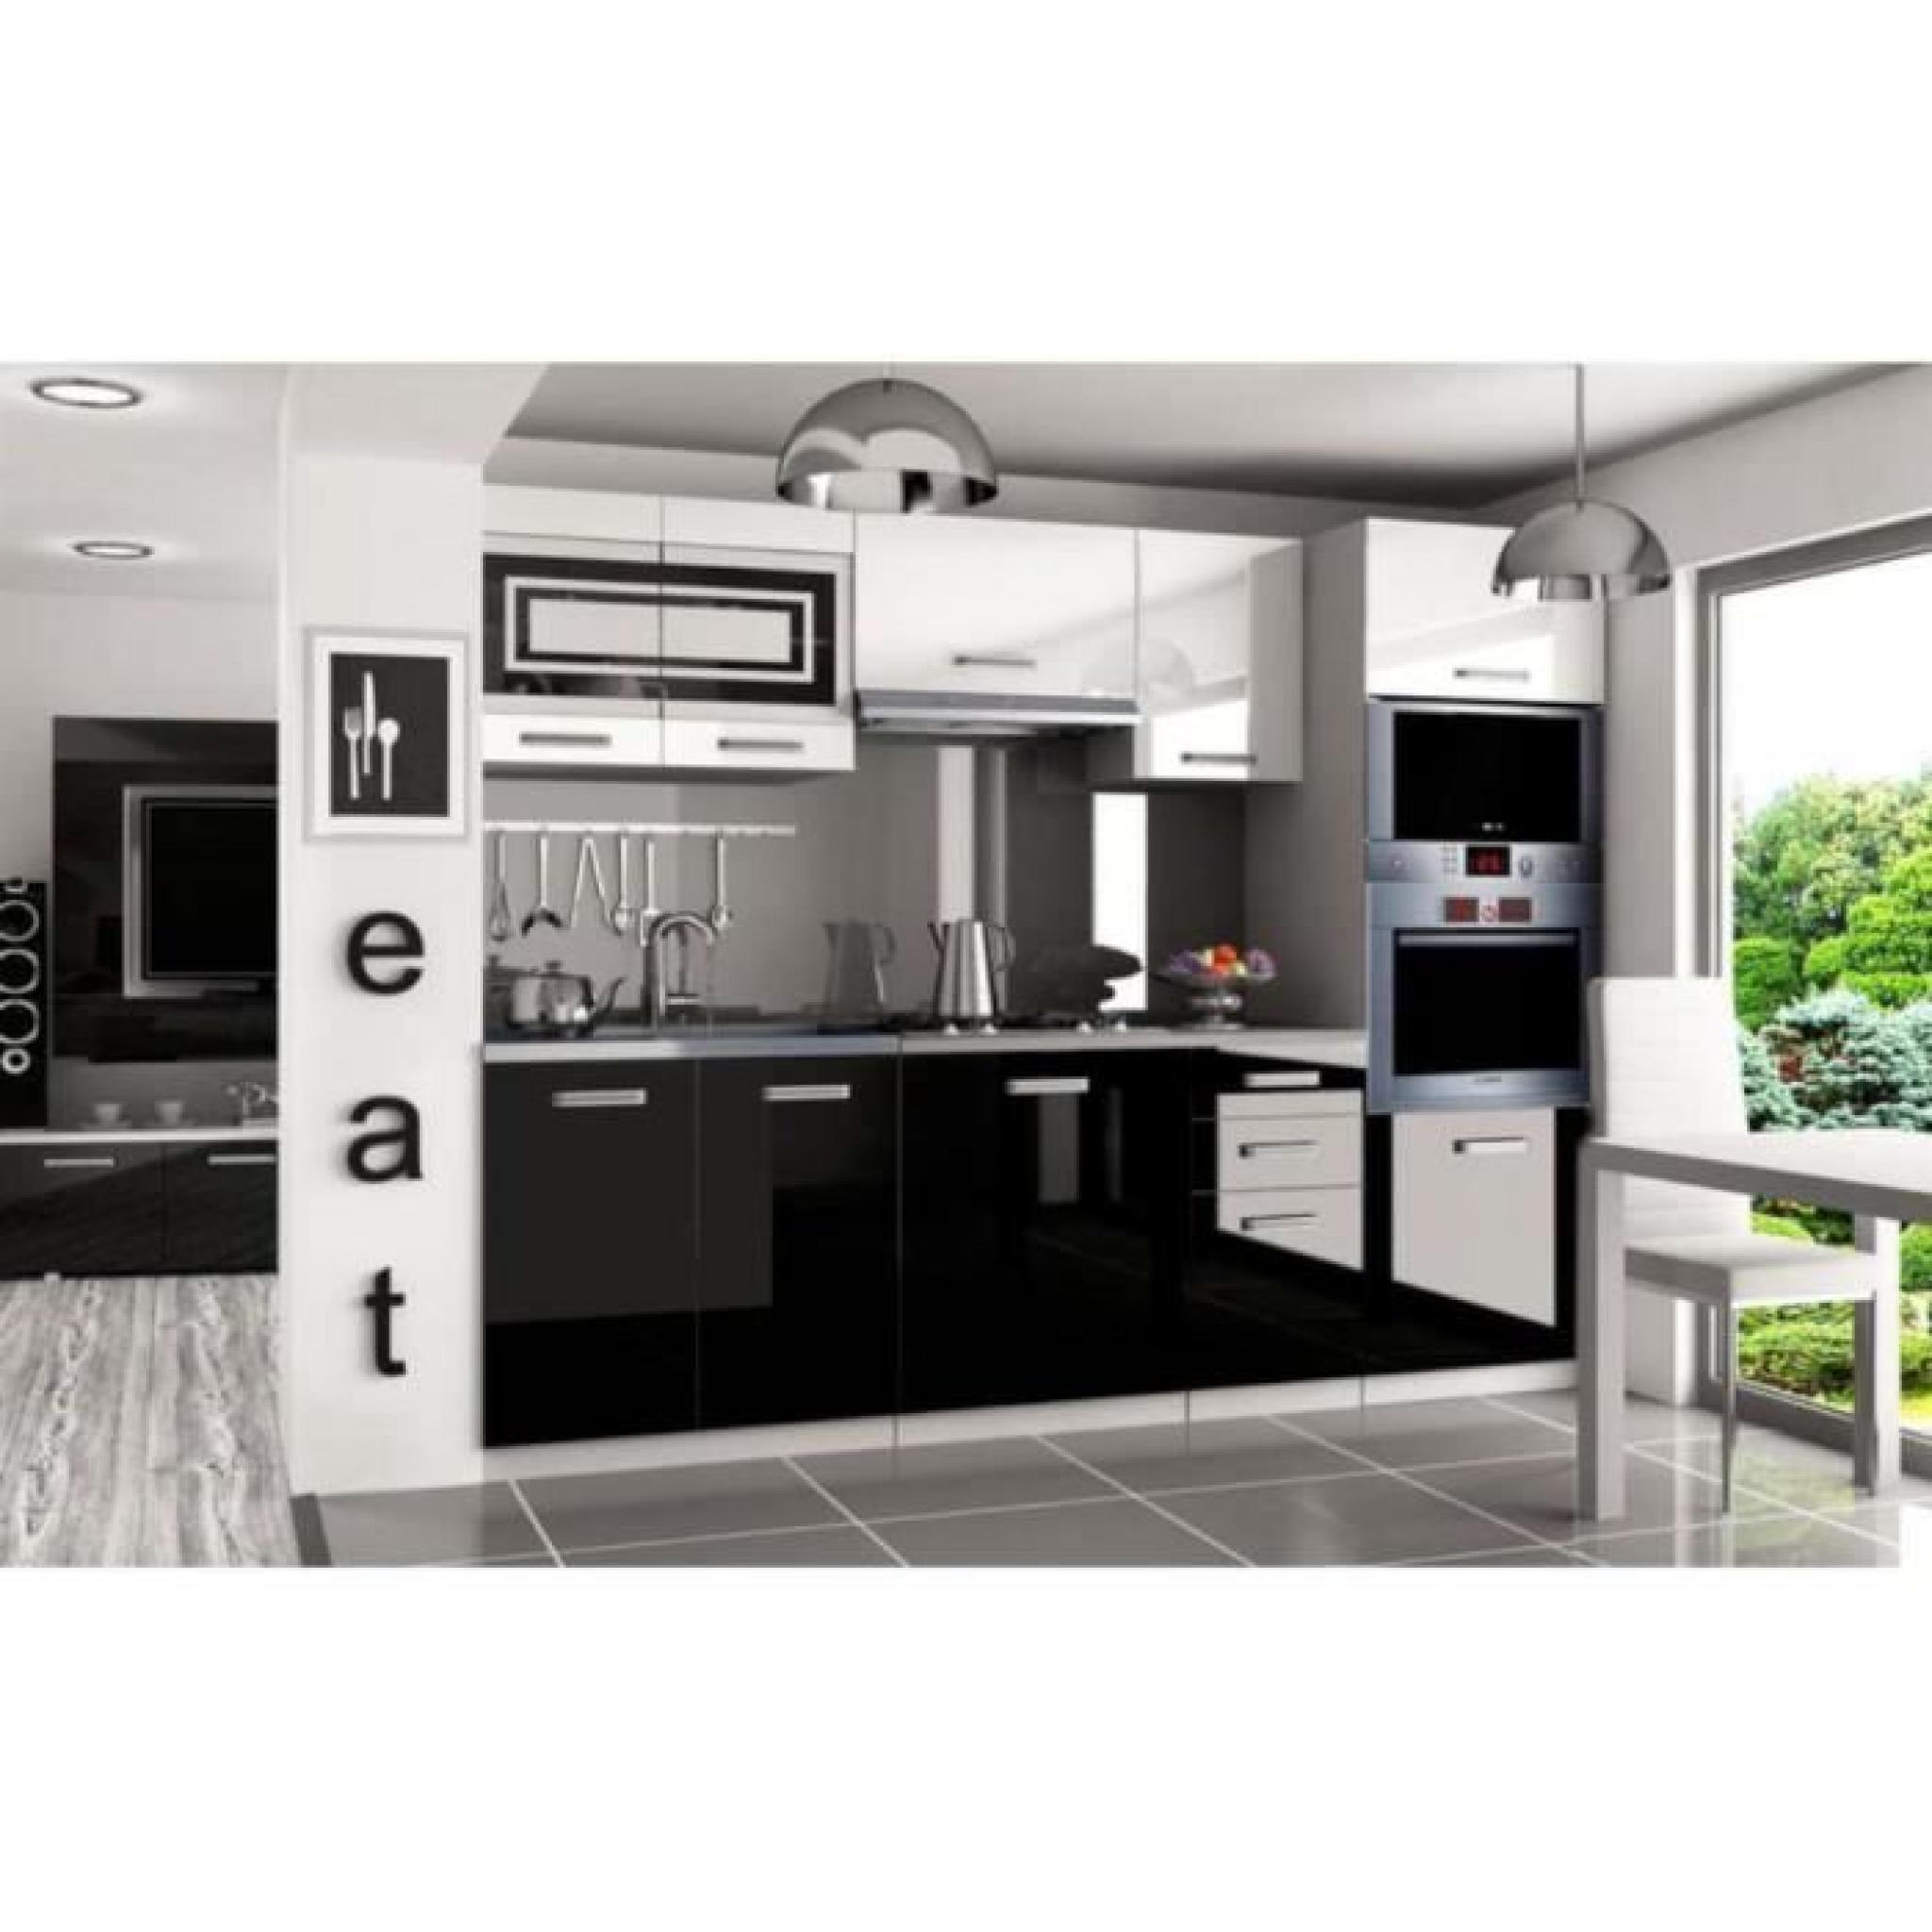 justhome paula pro cuisine quip e compl te 240 cm couleur. Black Bedroom Furniture Sets. Home Design Ideas